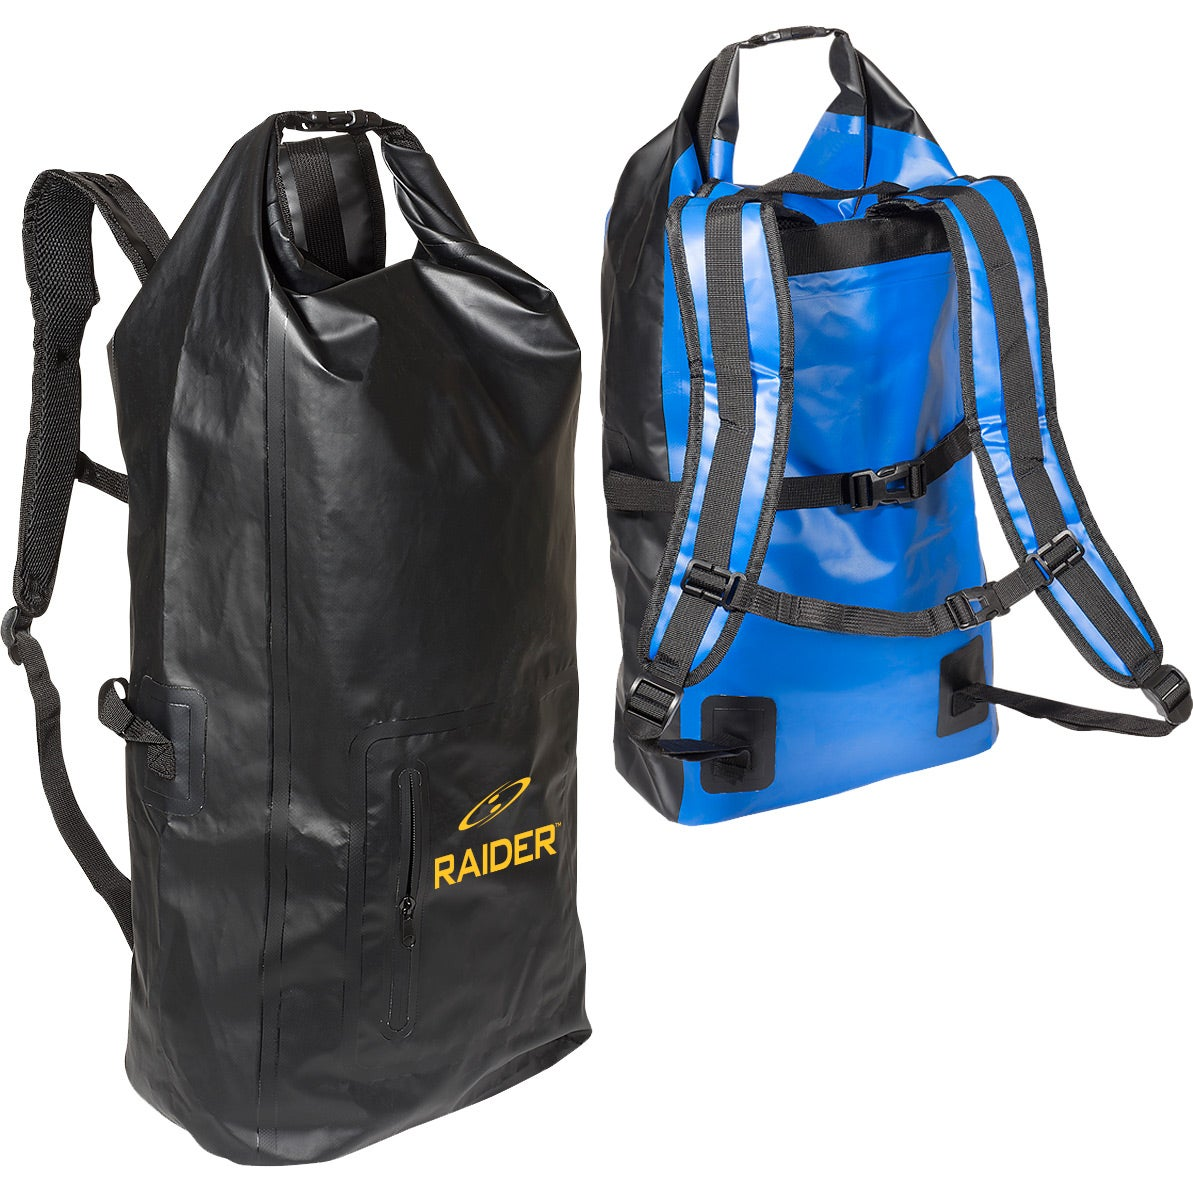 Promotional Backpack Water-Resistant Dry Bags with Custom Logo for ... 78fe2898a4